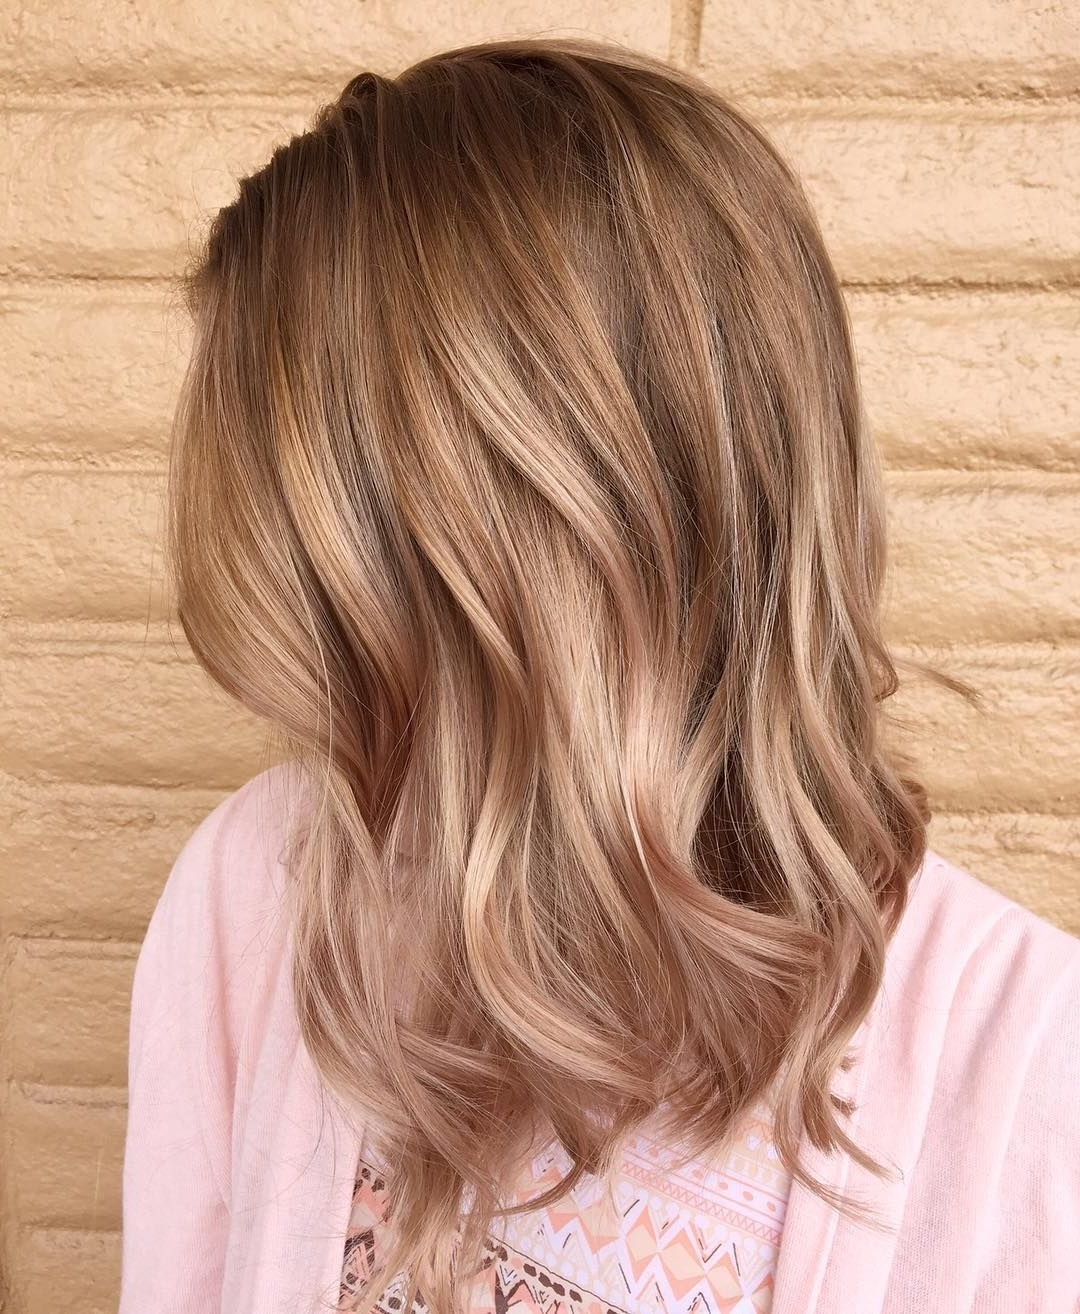 Best And Newest Dirty Blonde Hairstyles With Subtle Highlights For 25 Stupendous Hairstyles With Dark Blonde Hair – Deep Golden Tones (View 8 of 20)